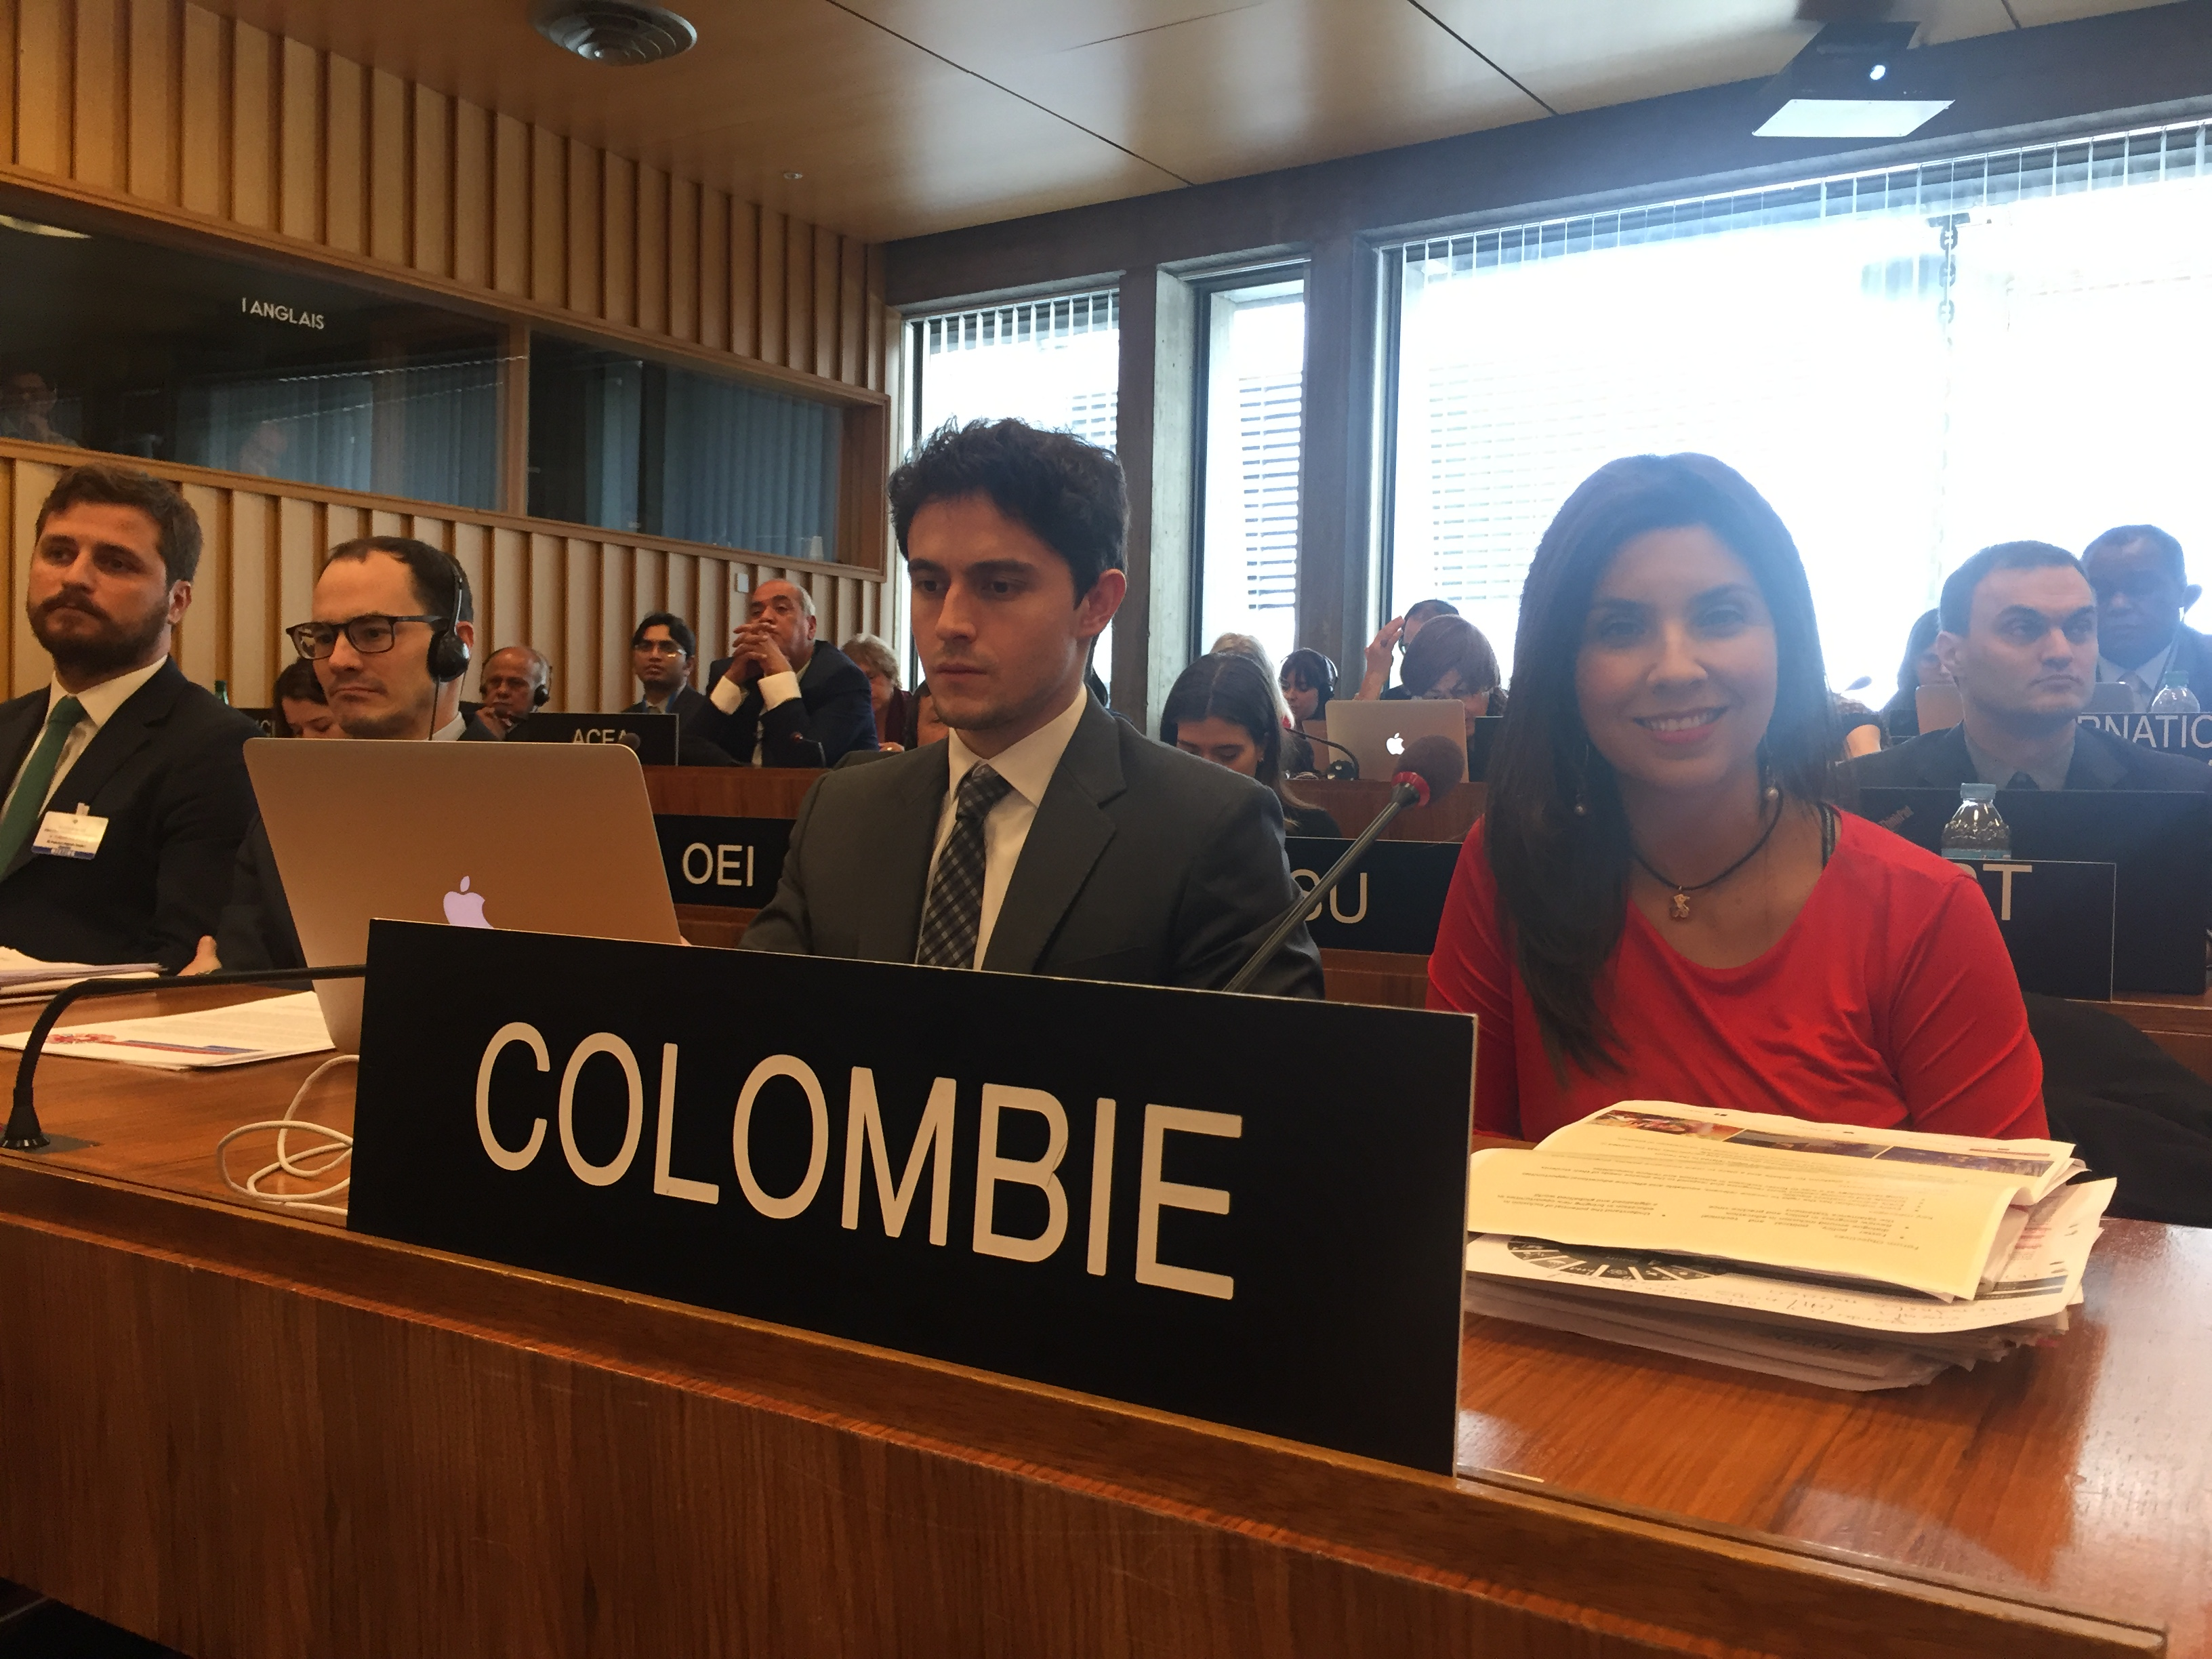 Minister of National Education of Colombia speaks about SDG4, 12 March 2019